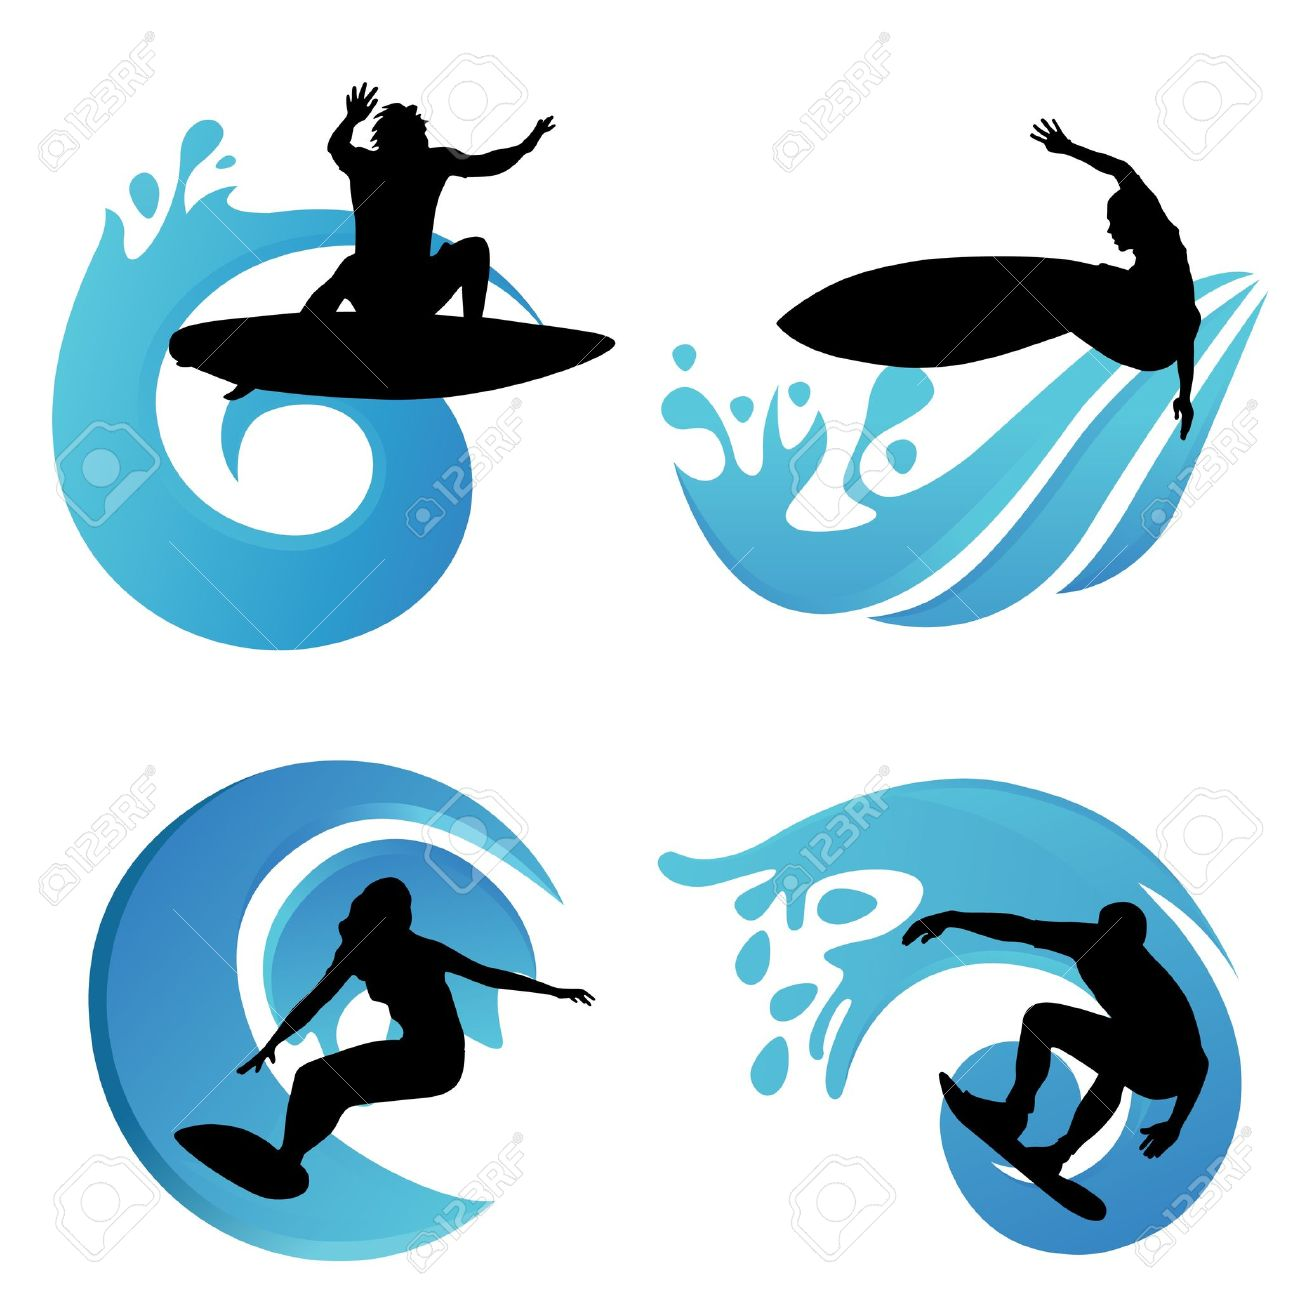 Surfboard clipart silhouette vector free library 7,456 Surf Silhouettes Cliparts, Stock Vector And Royalty Free ... vector free library